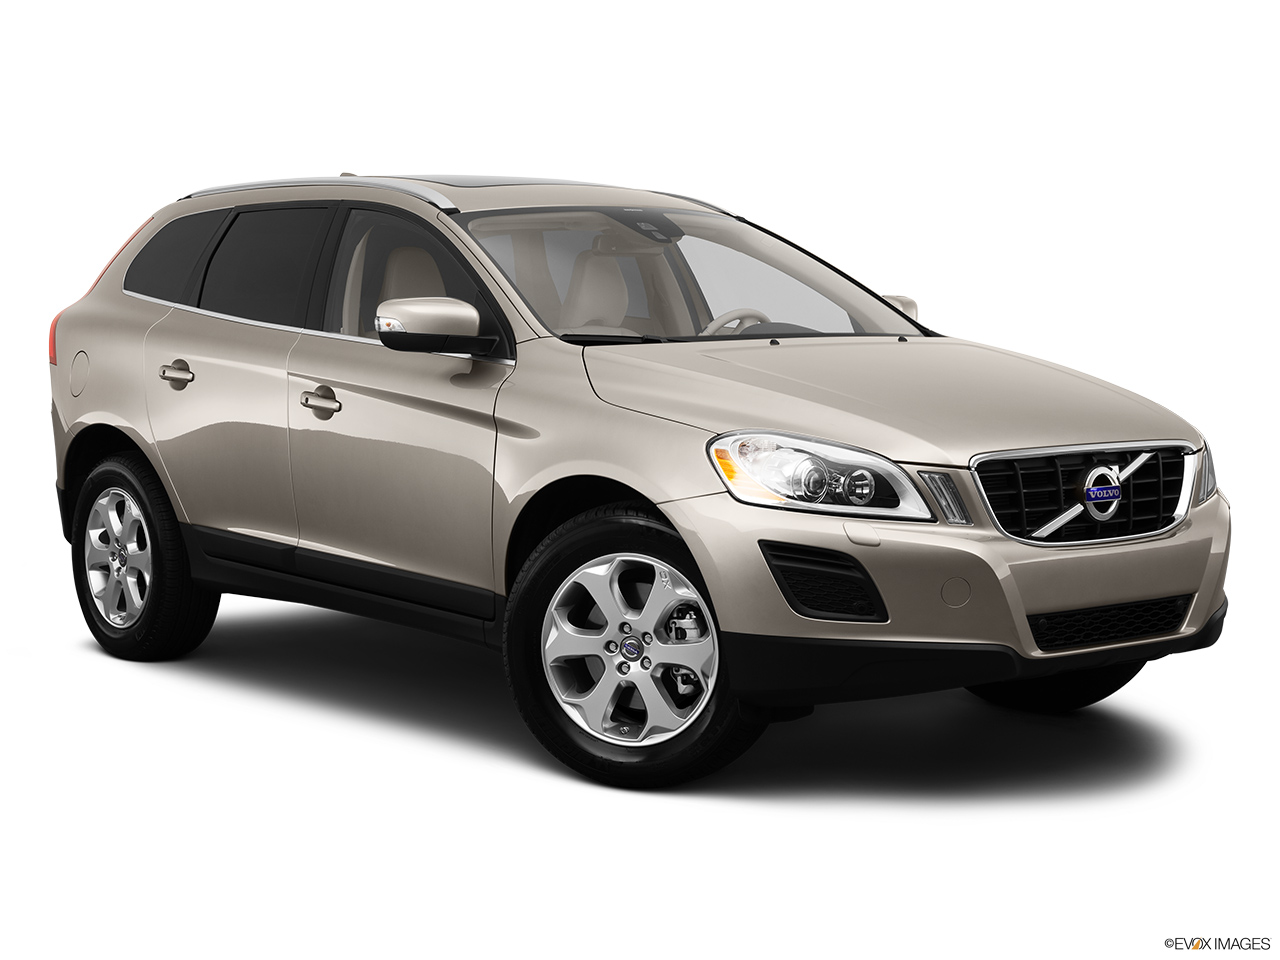 2013 Volvo XC60 3.2 FWD Premier Plus Front passenger 3/4 w/ wheels turned.